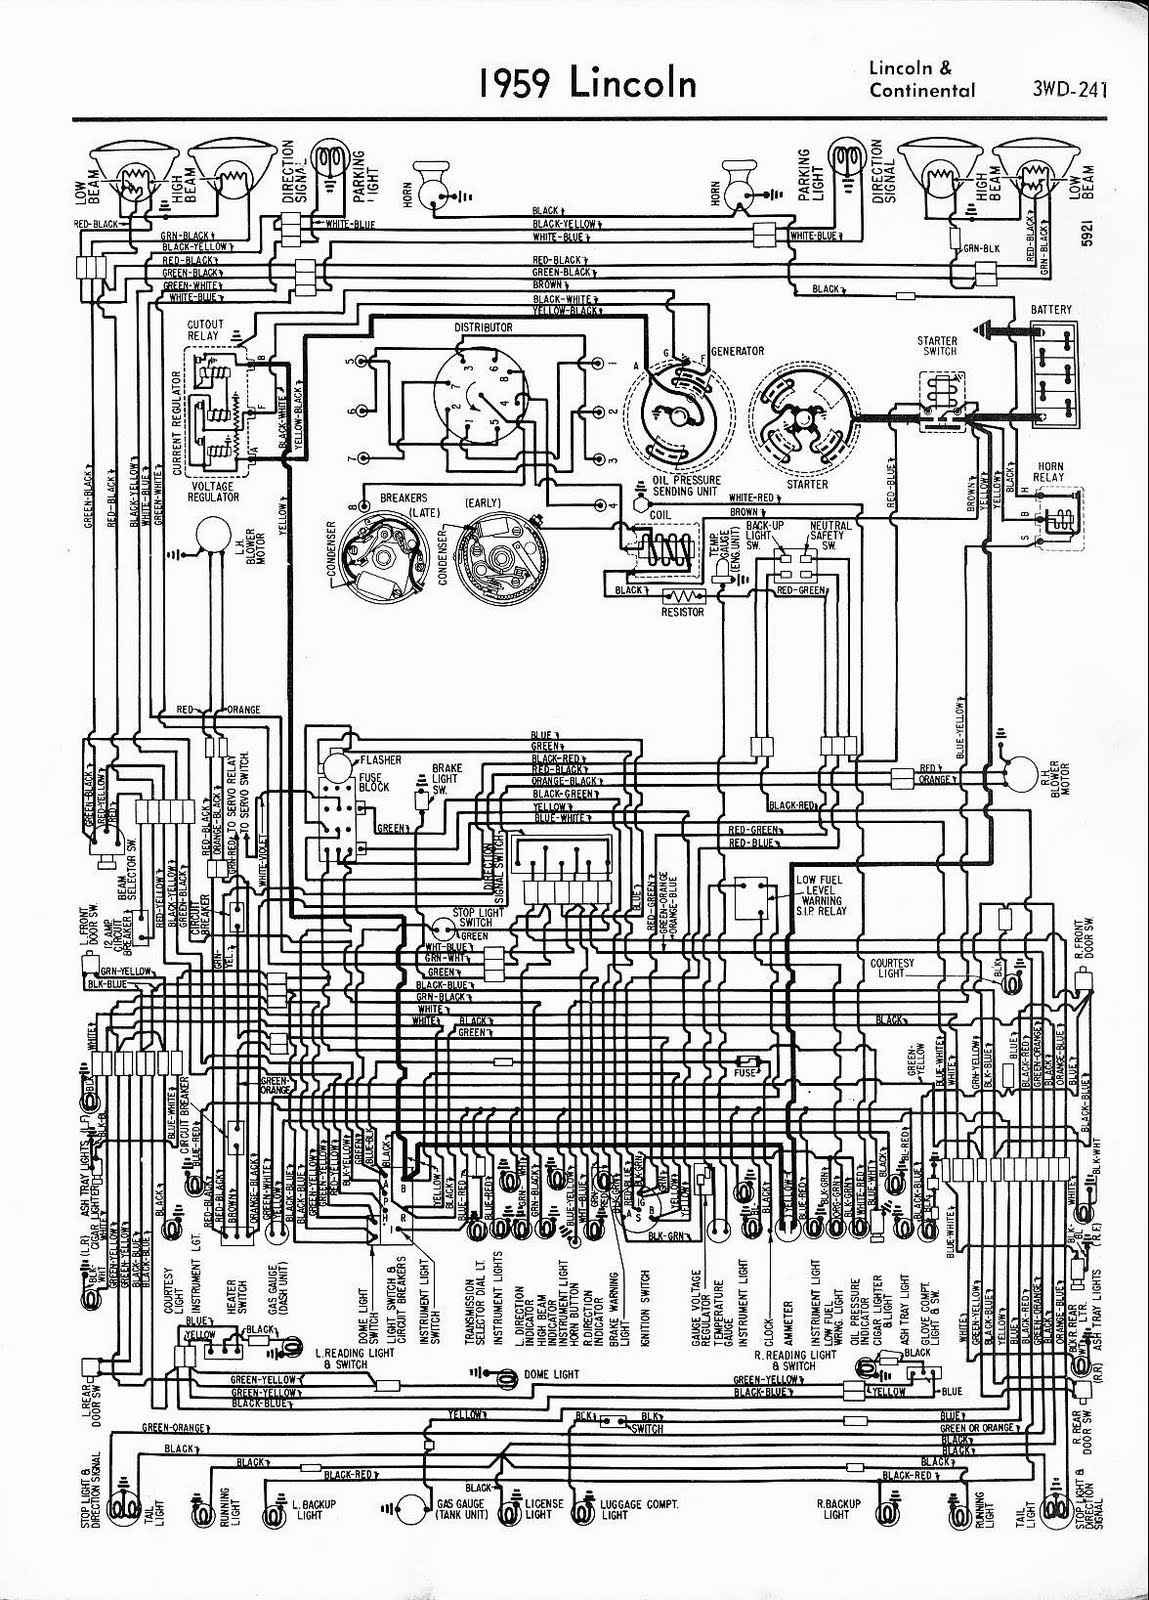 Lincoln Continental Wiring on 1959 Vw Wiring Diagram